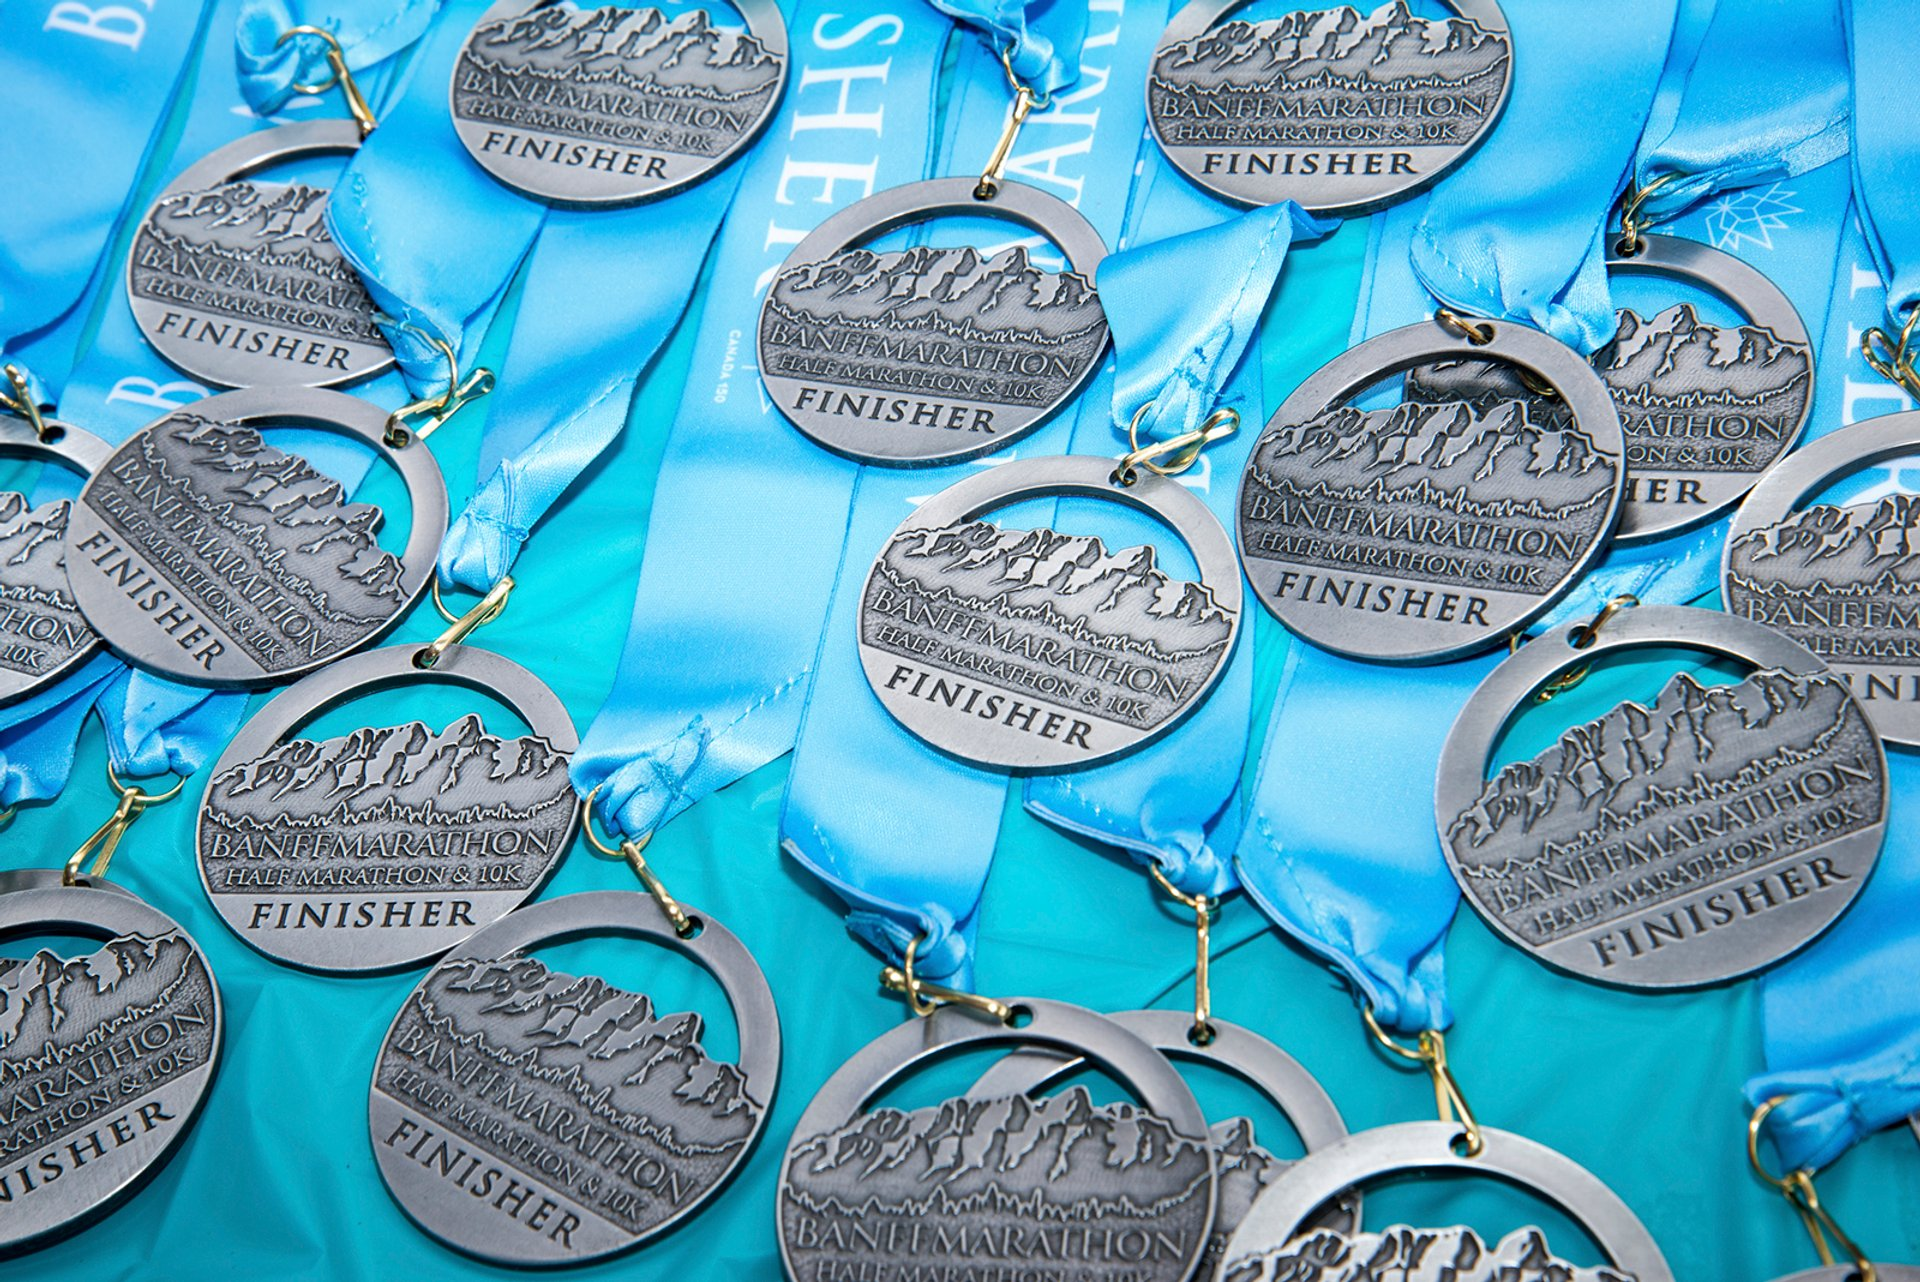 Best time to see Banff Marathon in Banff & Jasper National Parks 2020